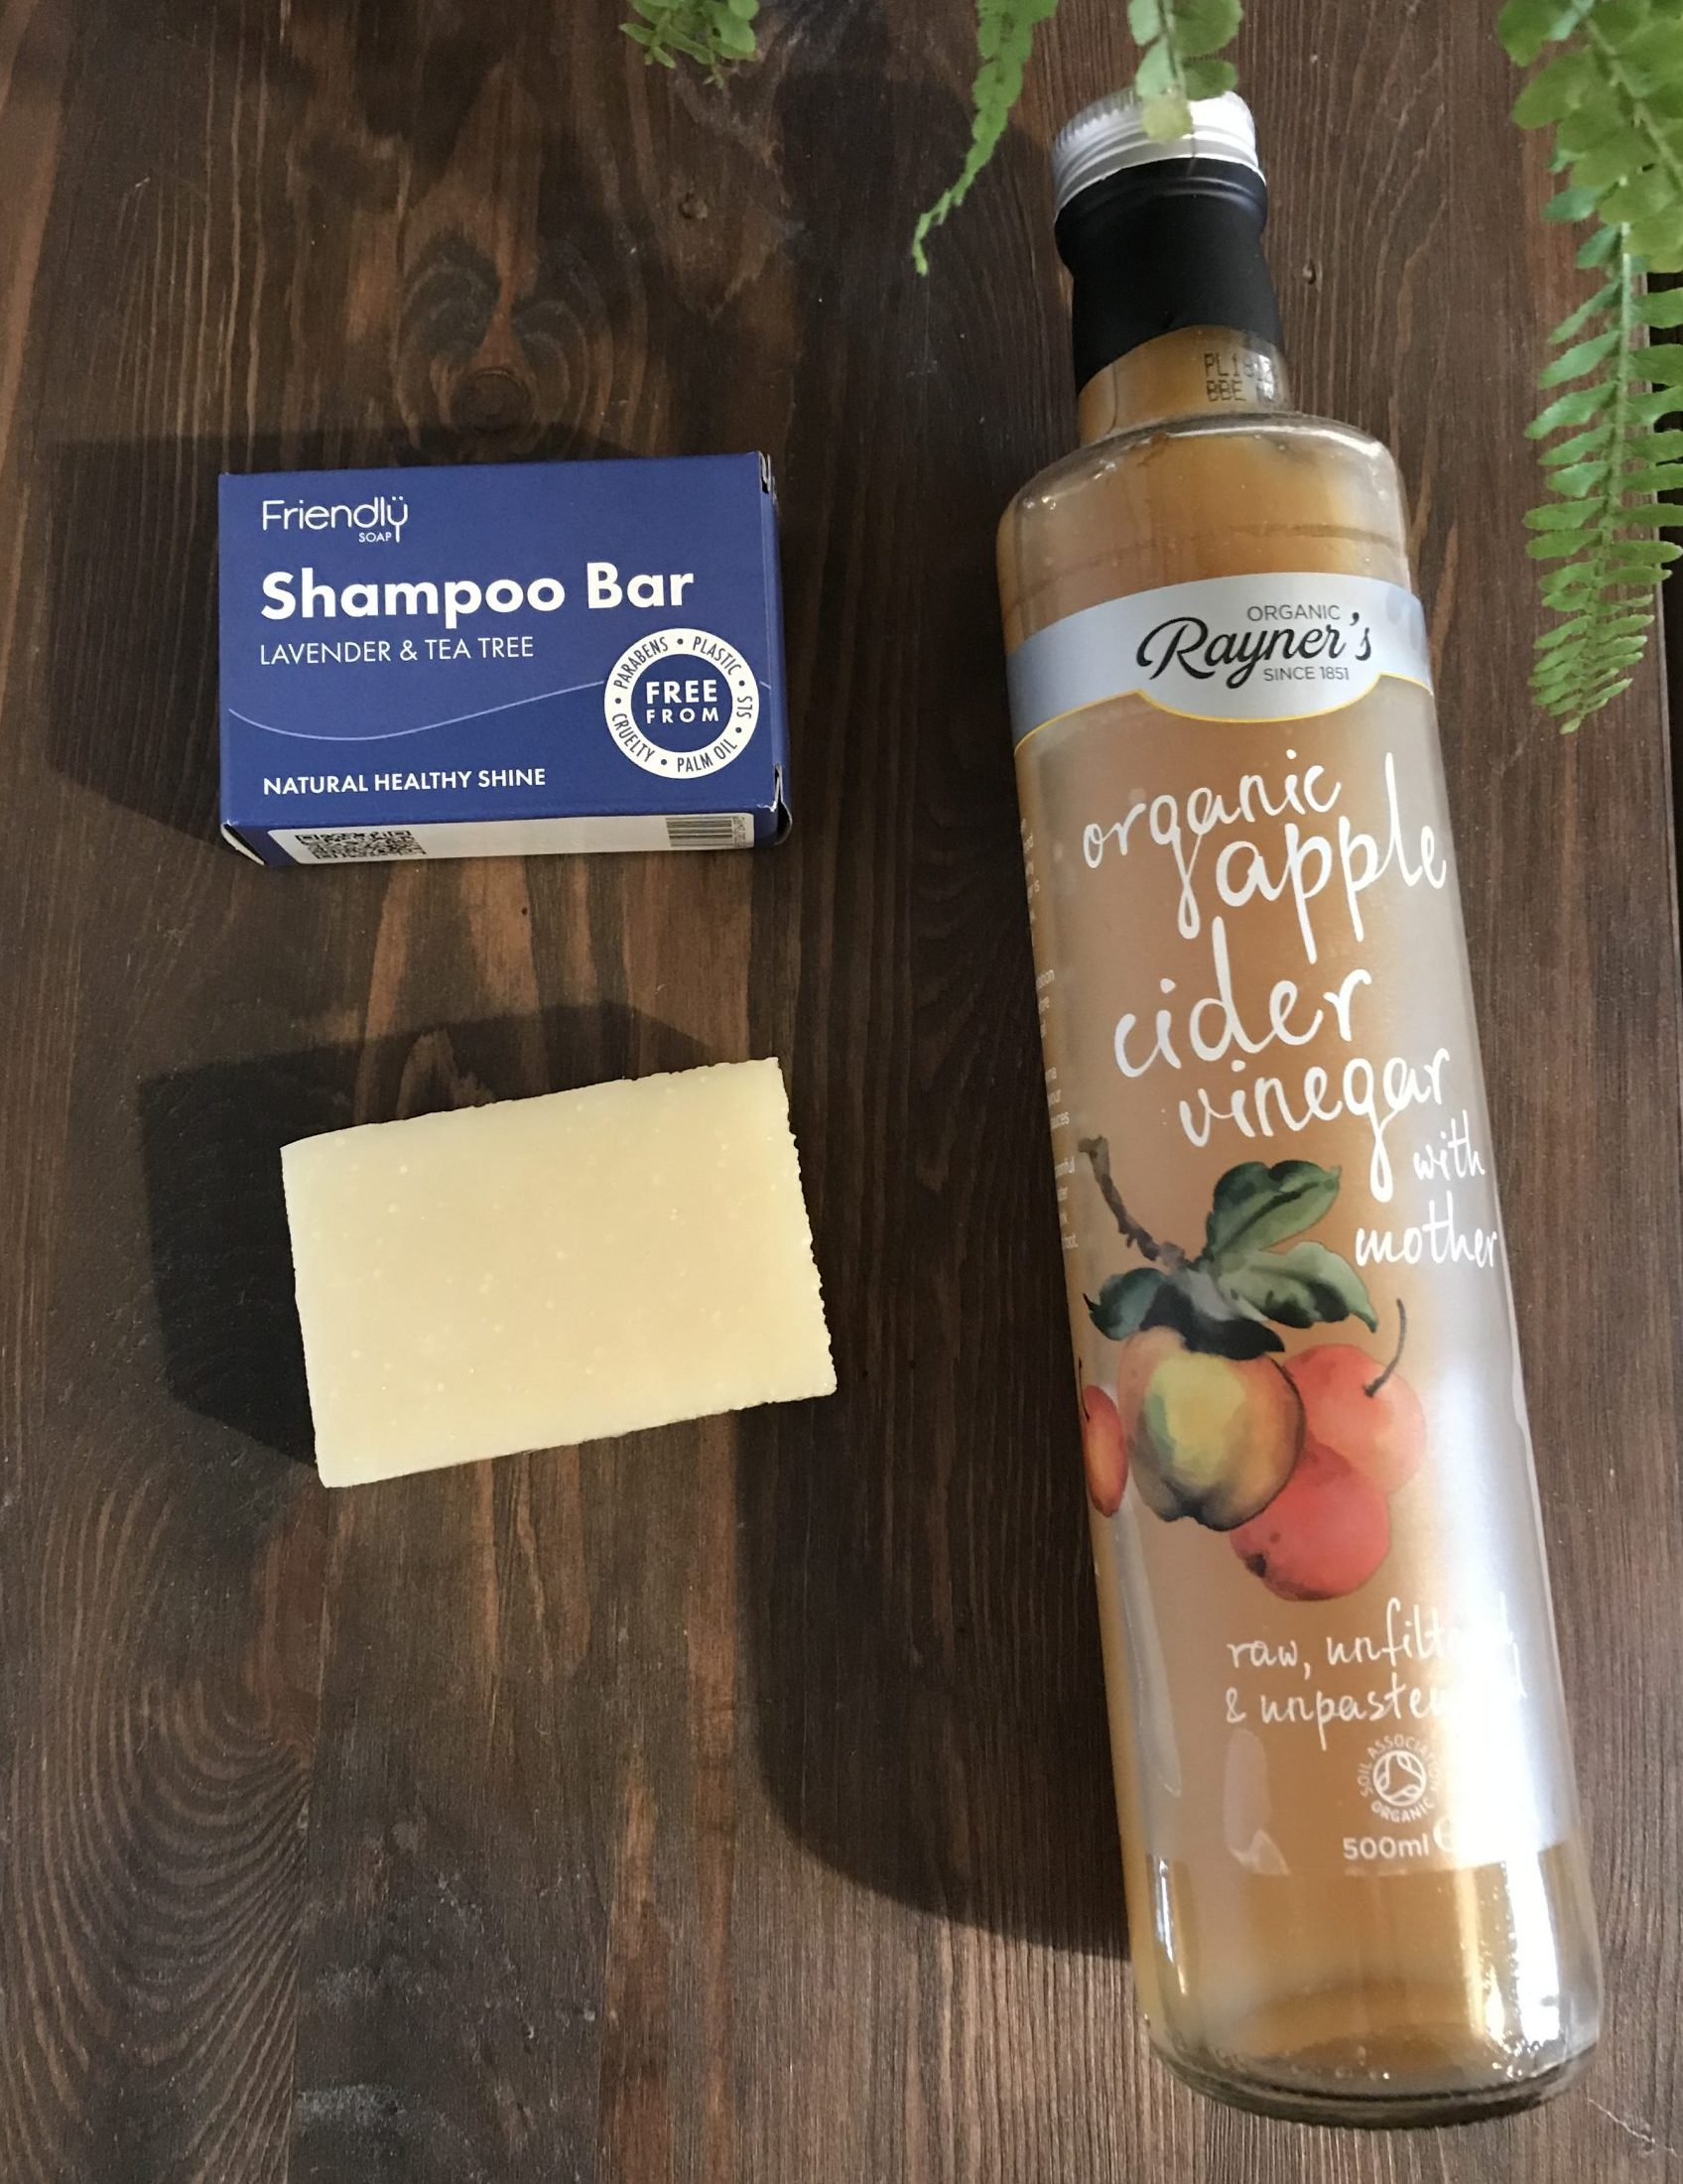 Solid shampoo bar and apple cider vinegar for shampoo bar transition period.